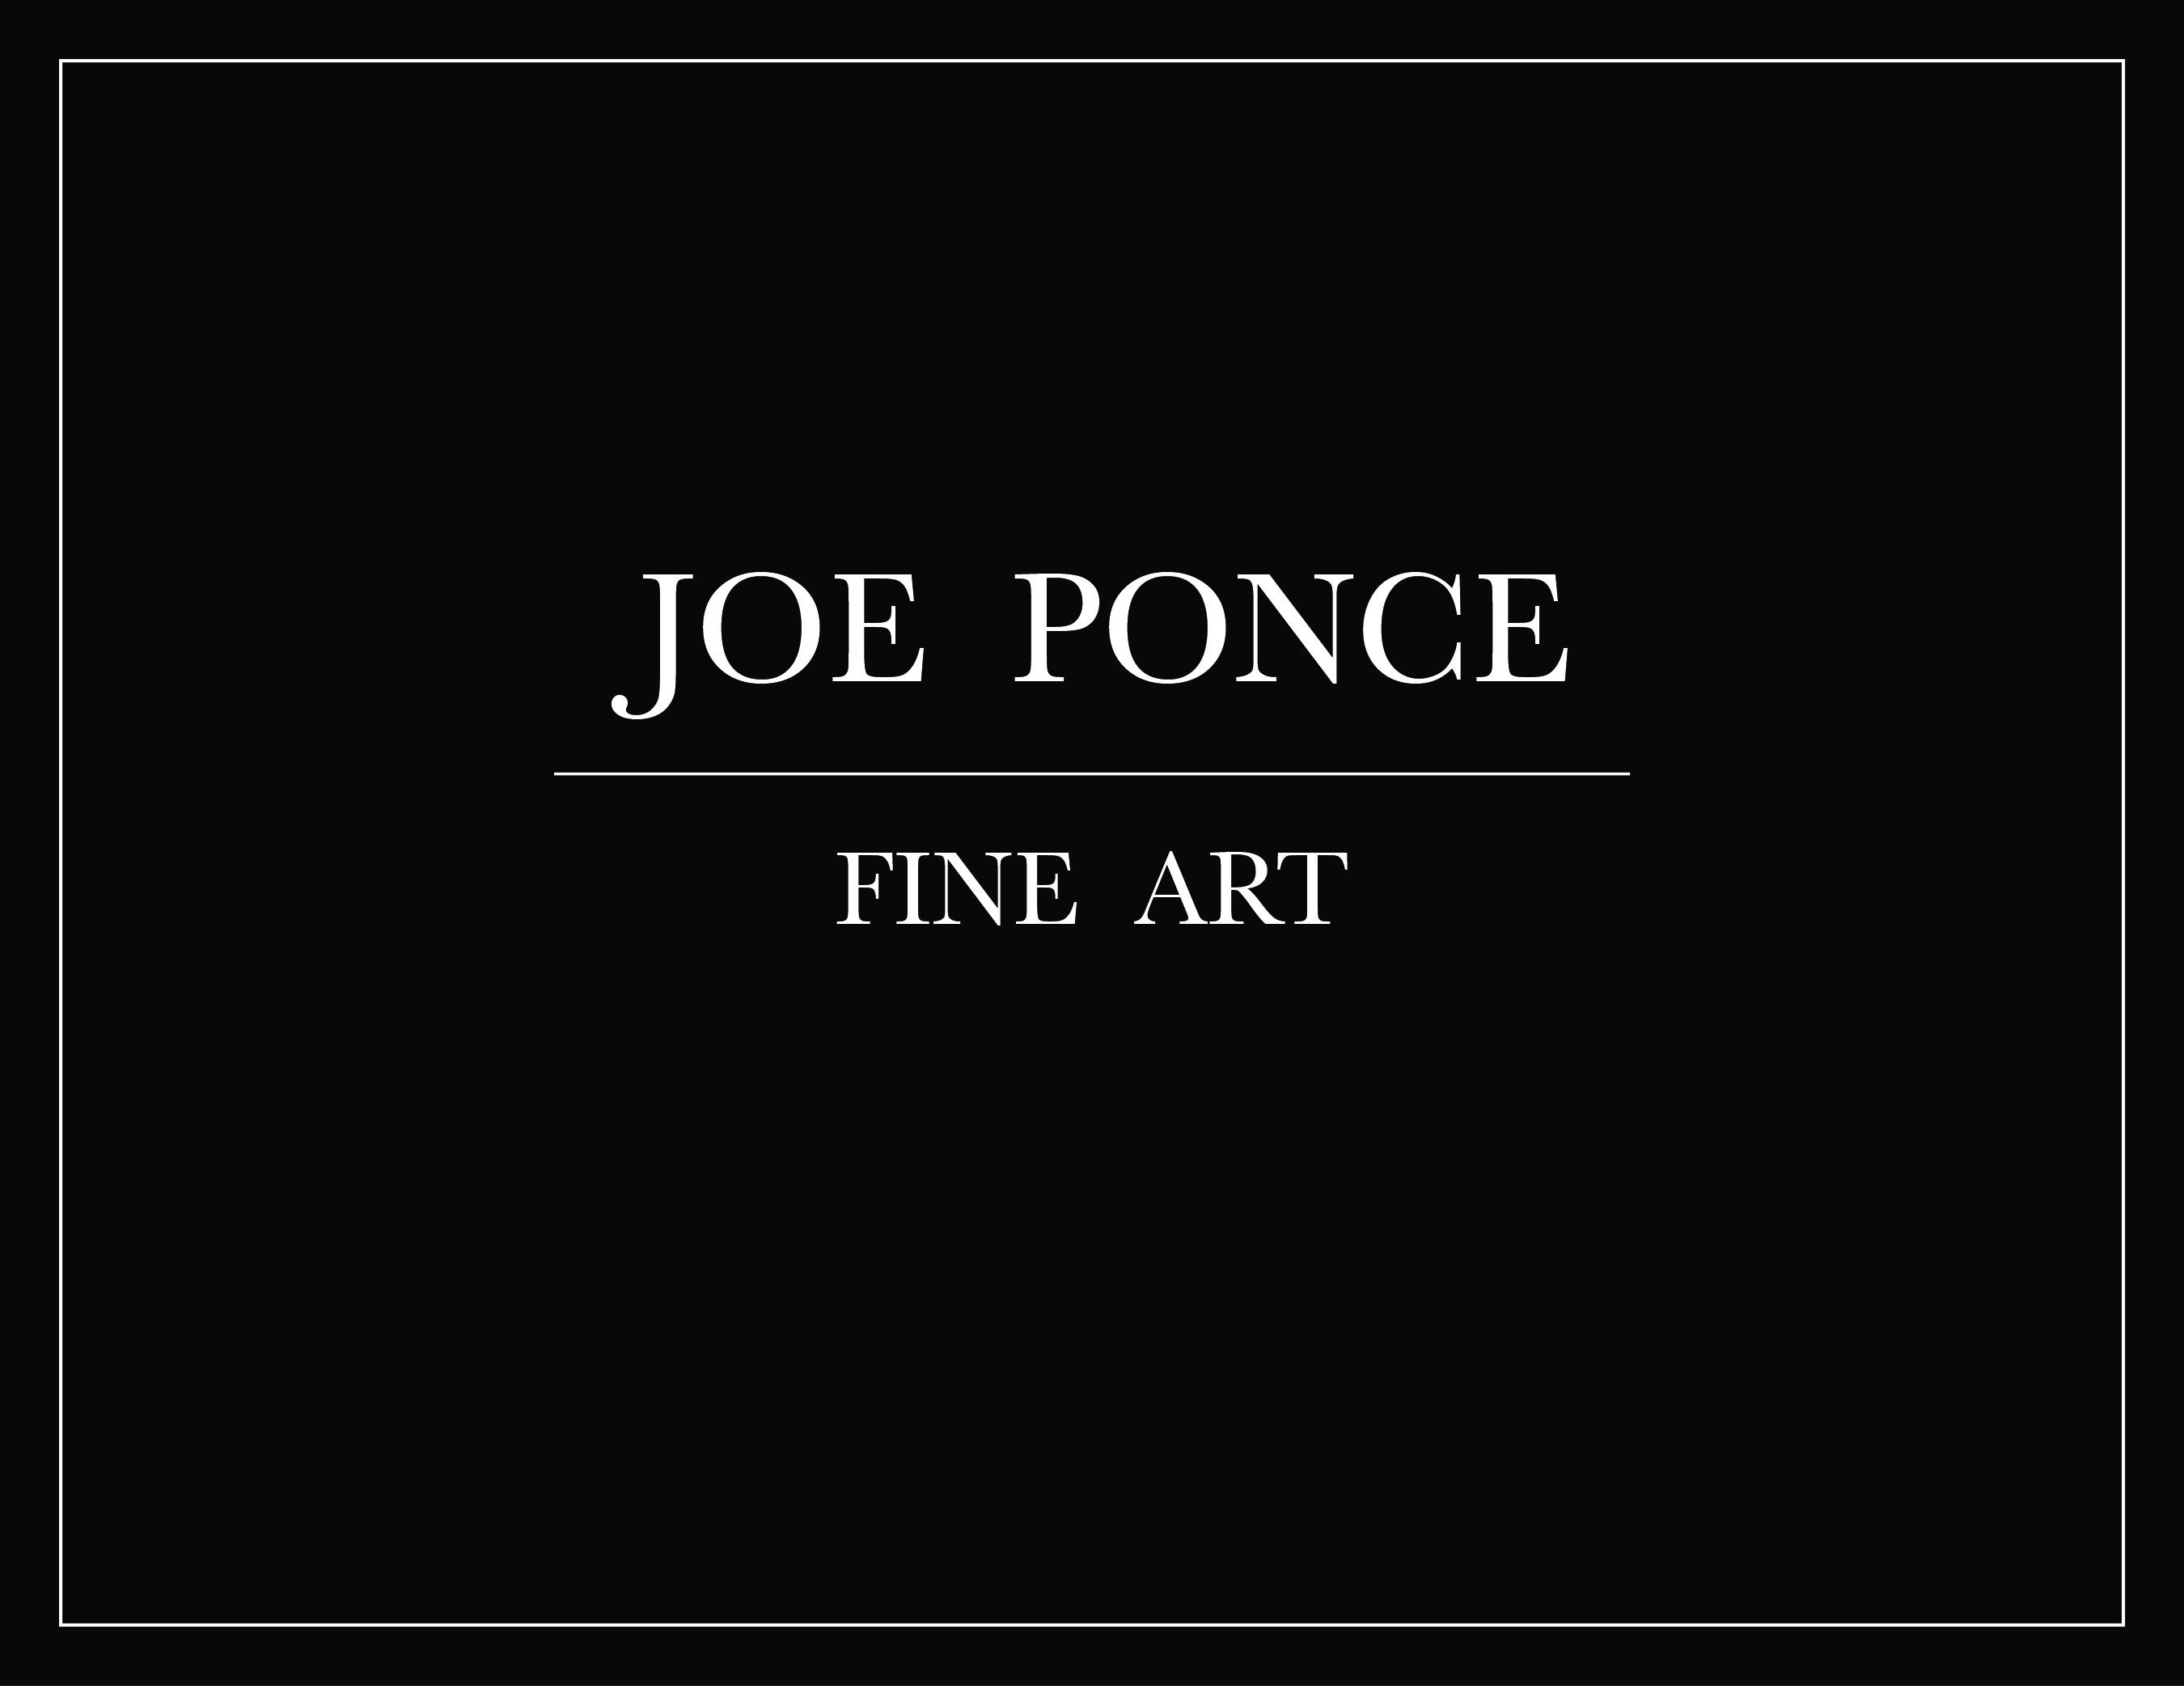 Joe Ponce Fine Art